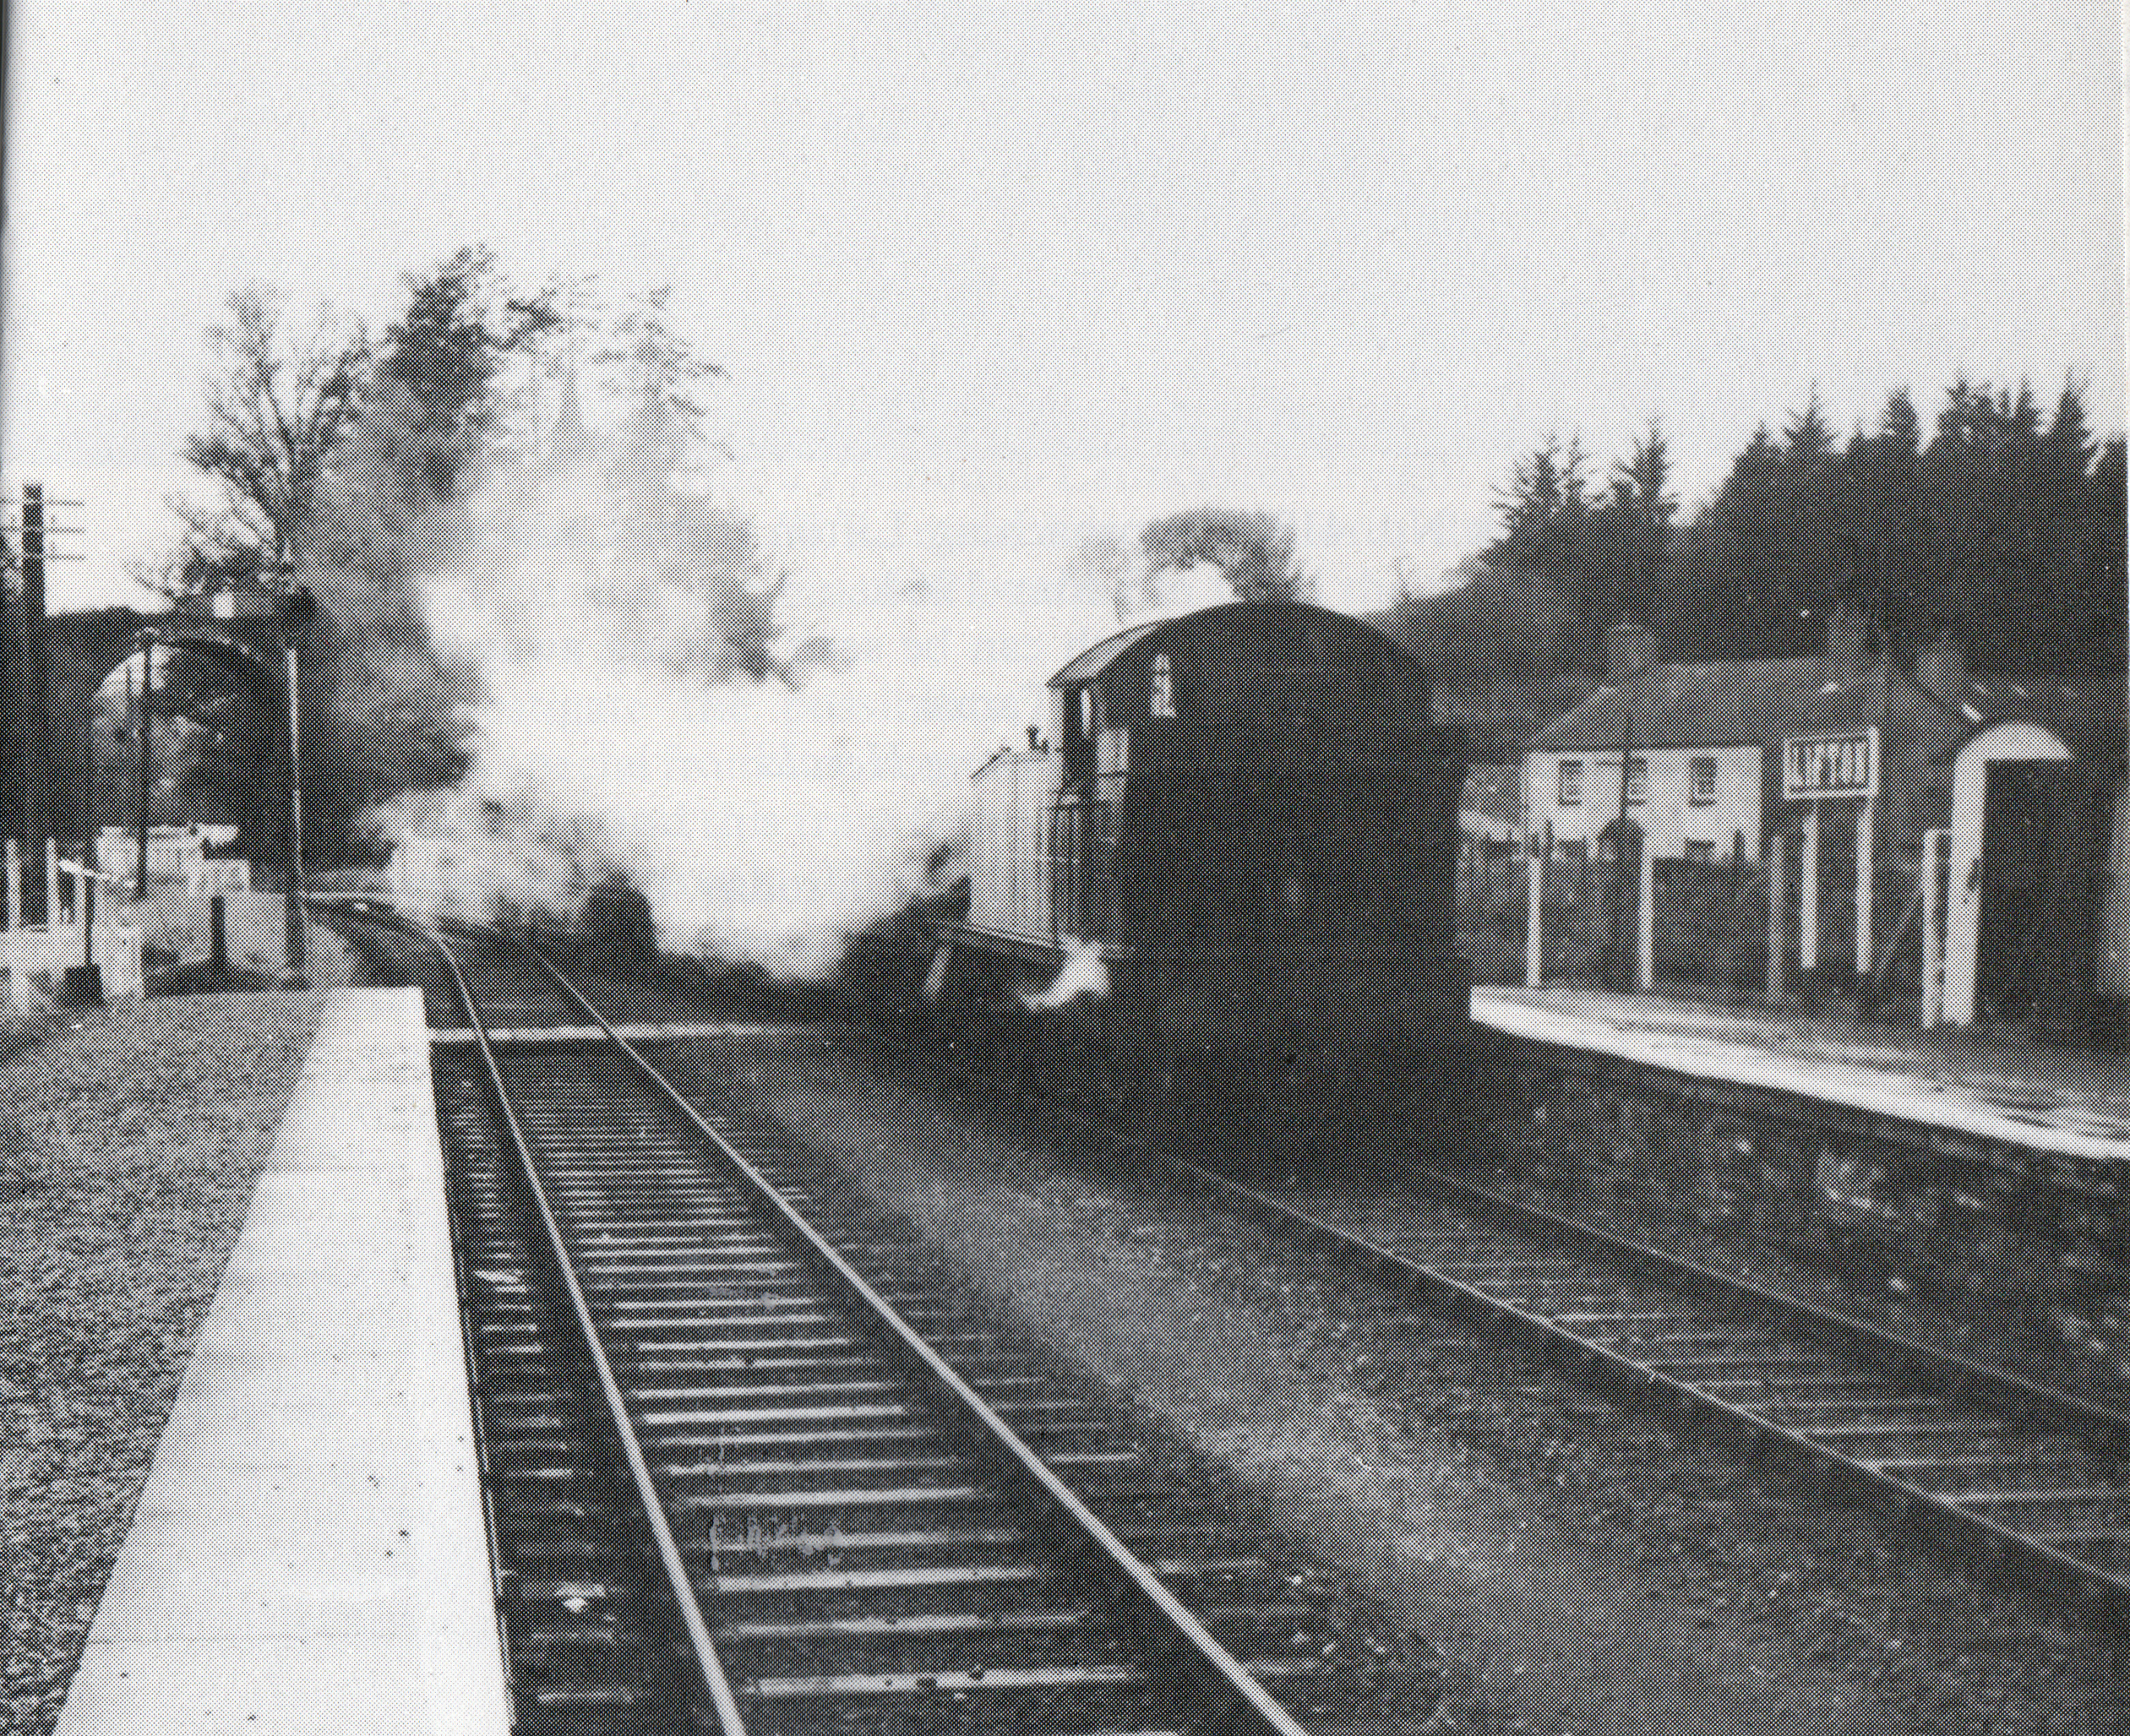 5532-arrives-at-lifton-from-launceston-in-november-1961